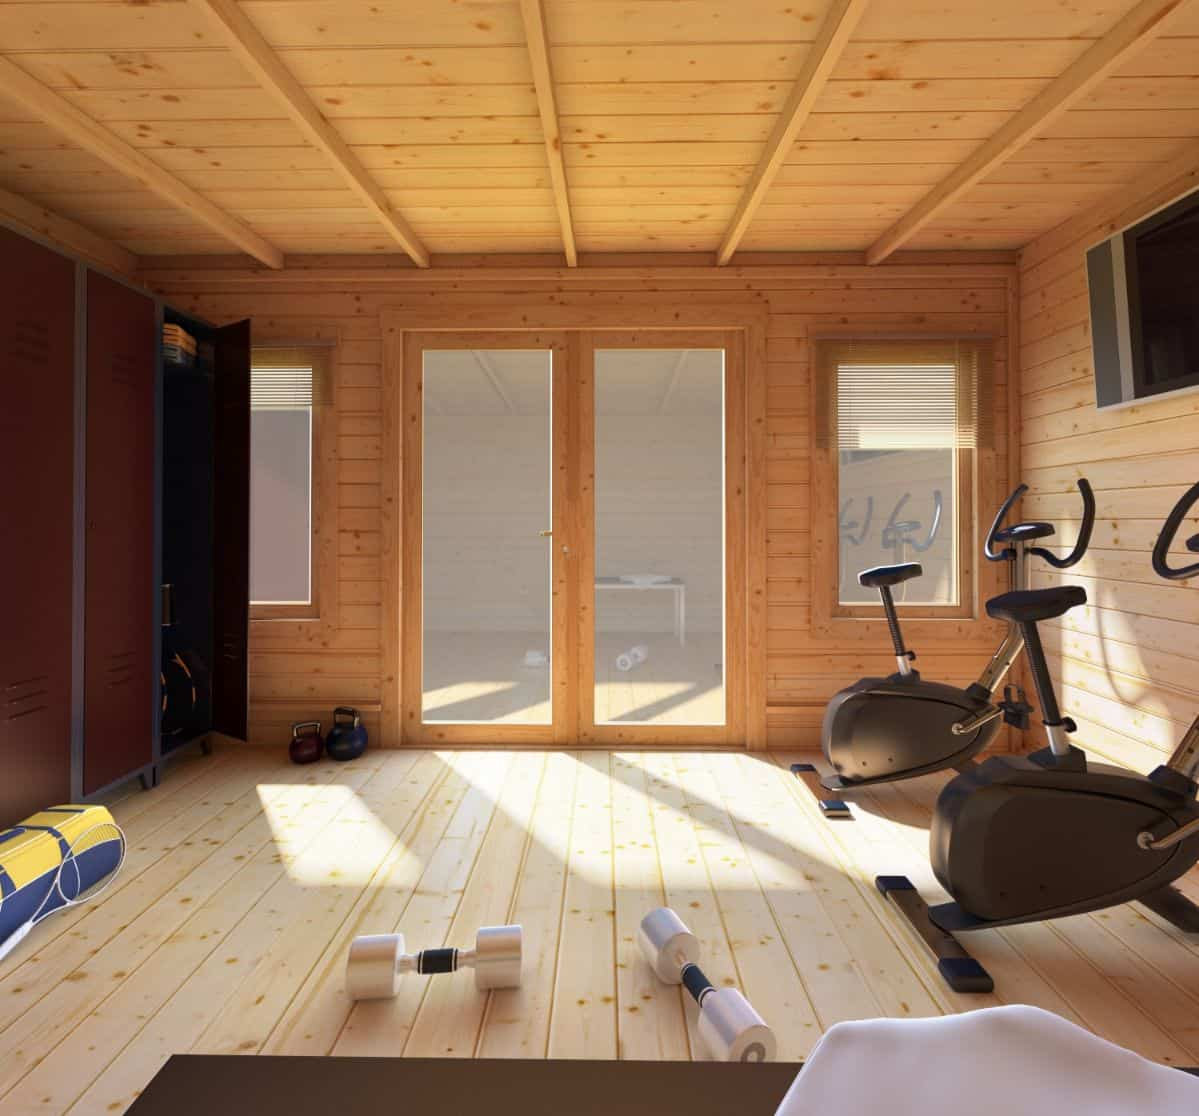 garden-gym-log-cabin-7-decorate-and-work-it-out